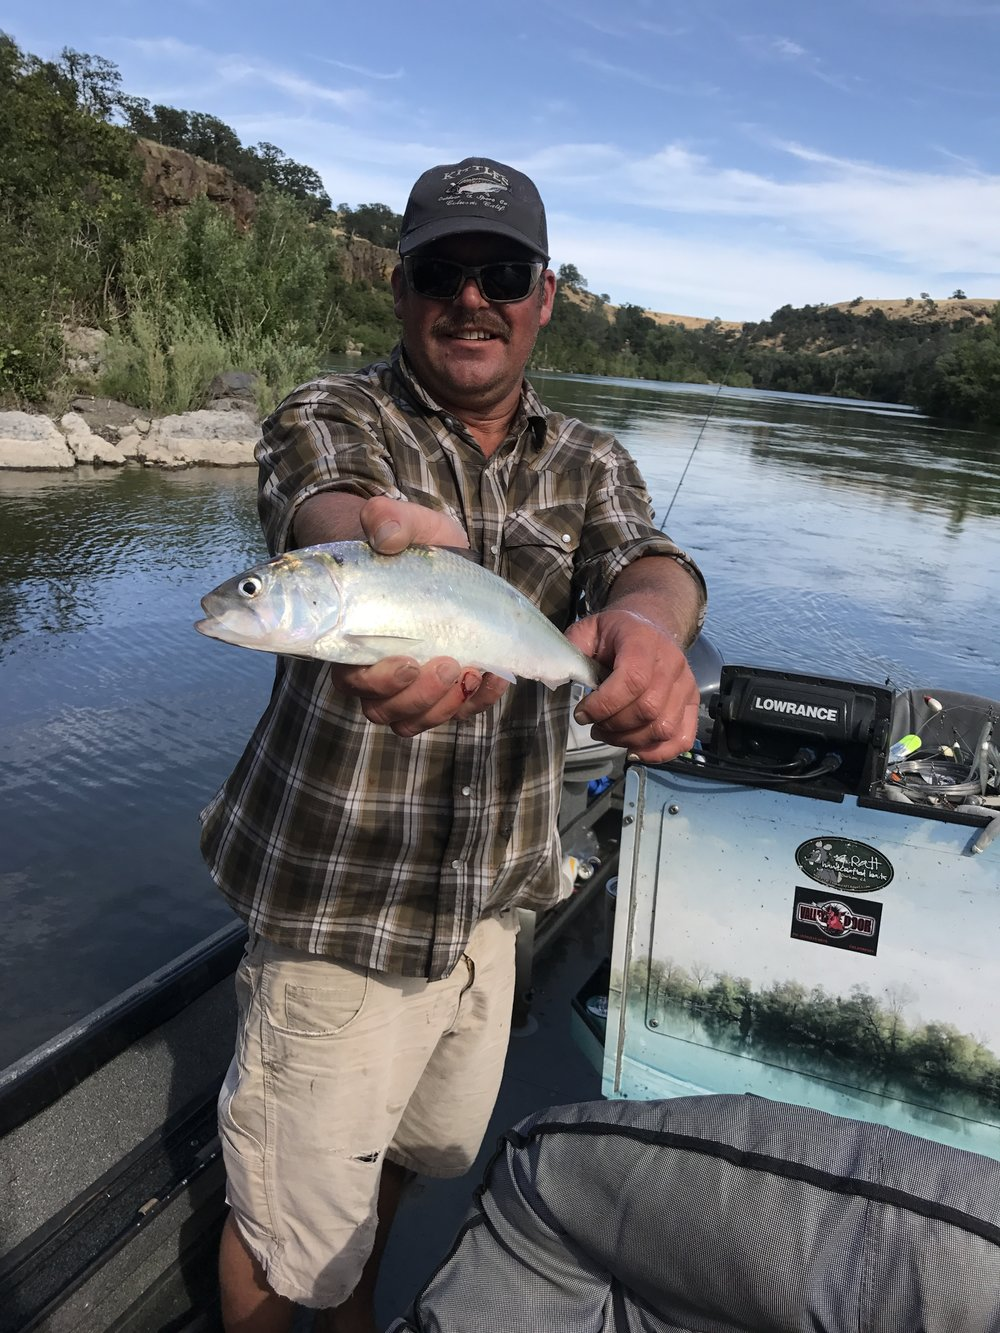 Mike Rasmussen with  SalmonSacRiver.com  holds a male American Shad he caught at a creek mouth on the Sacramento River on June 5, 2017 while fishing a red 1/16 oz jig head with a  Chartreuse Mr. Twister grub.